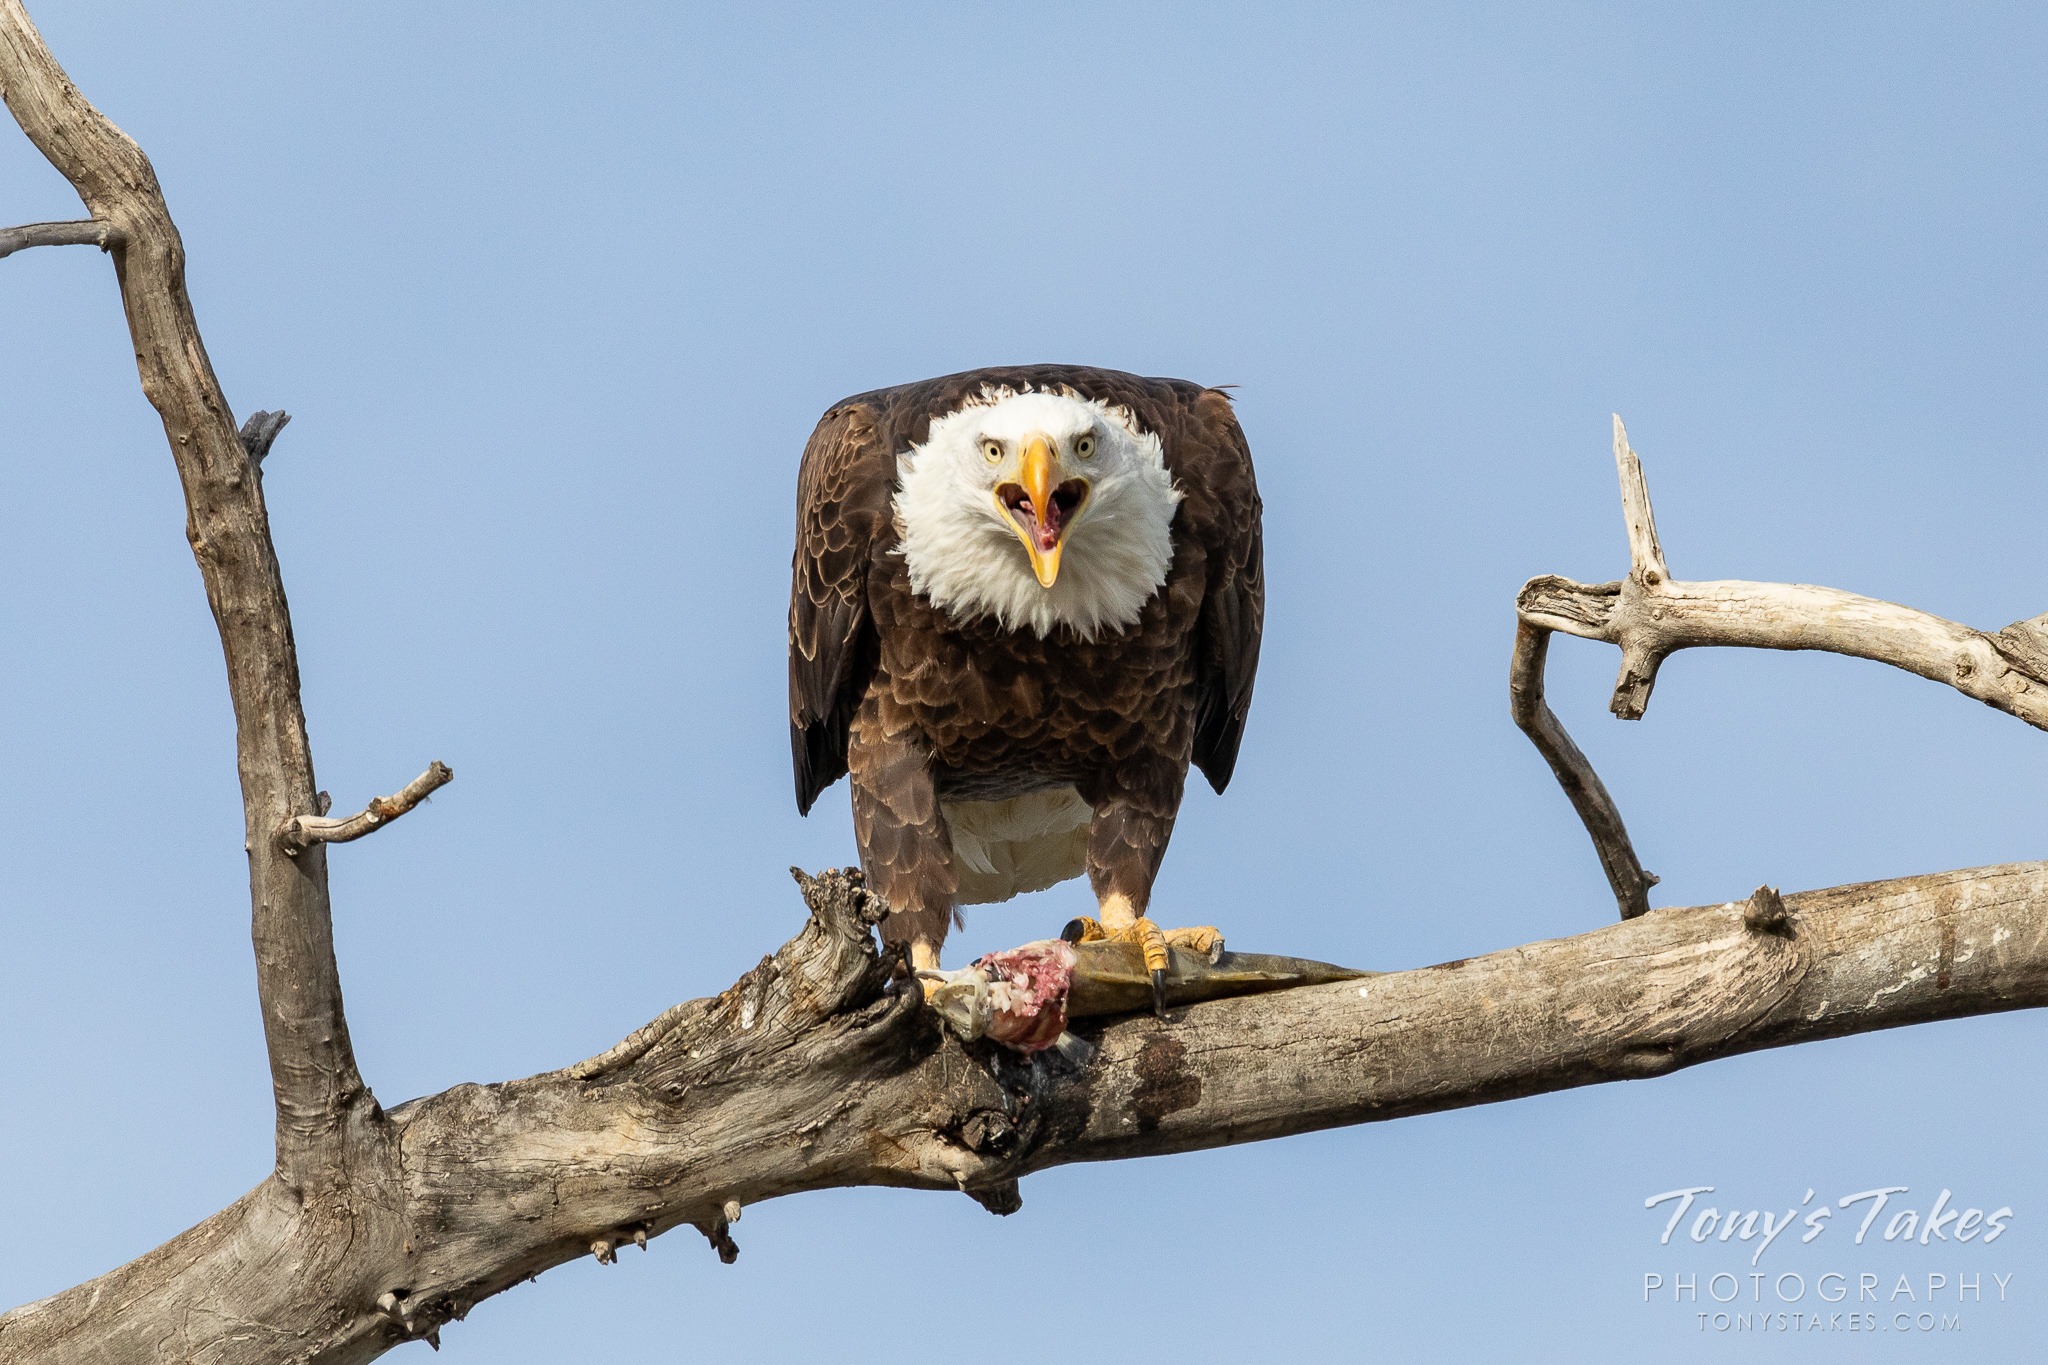 A bald eagle devours a fish in Boulder County, Colorado. (© Tony's Takes)